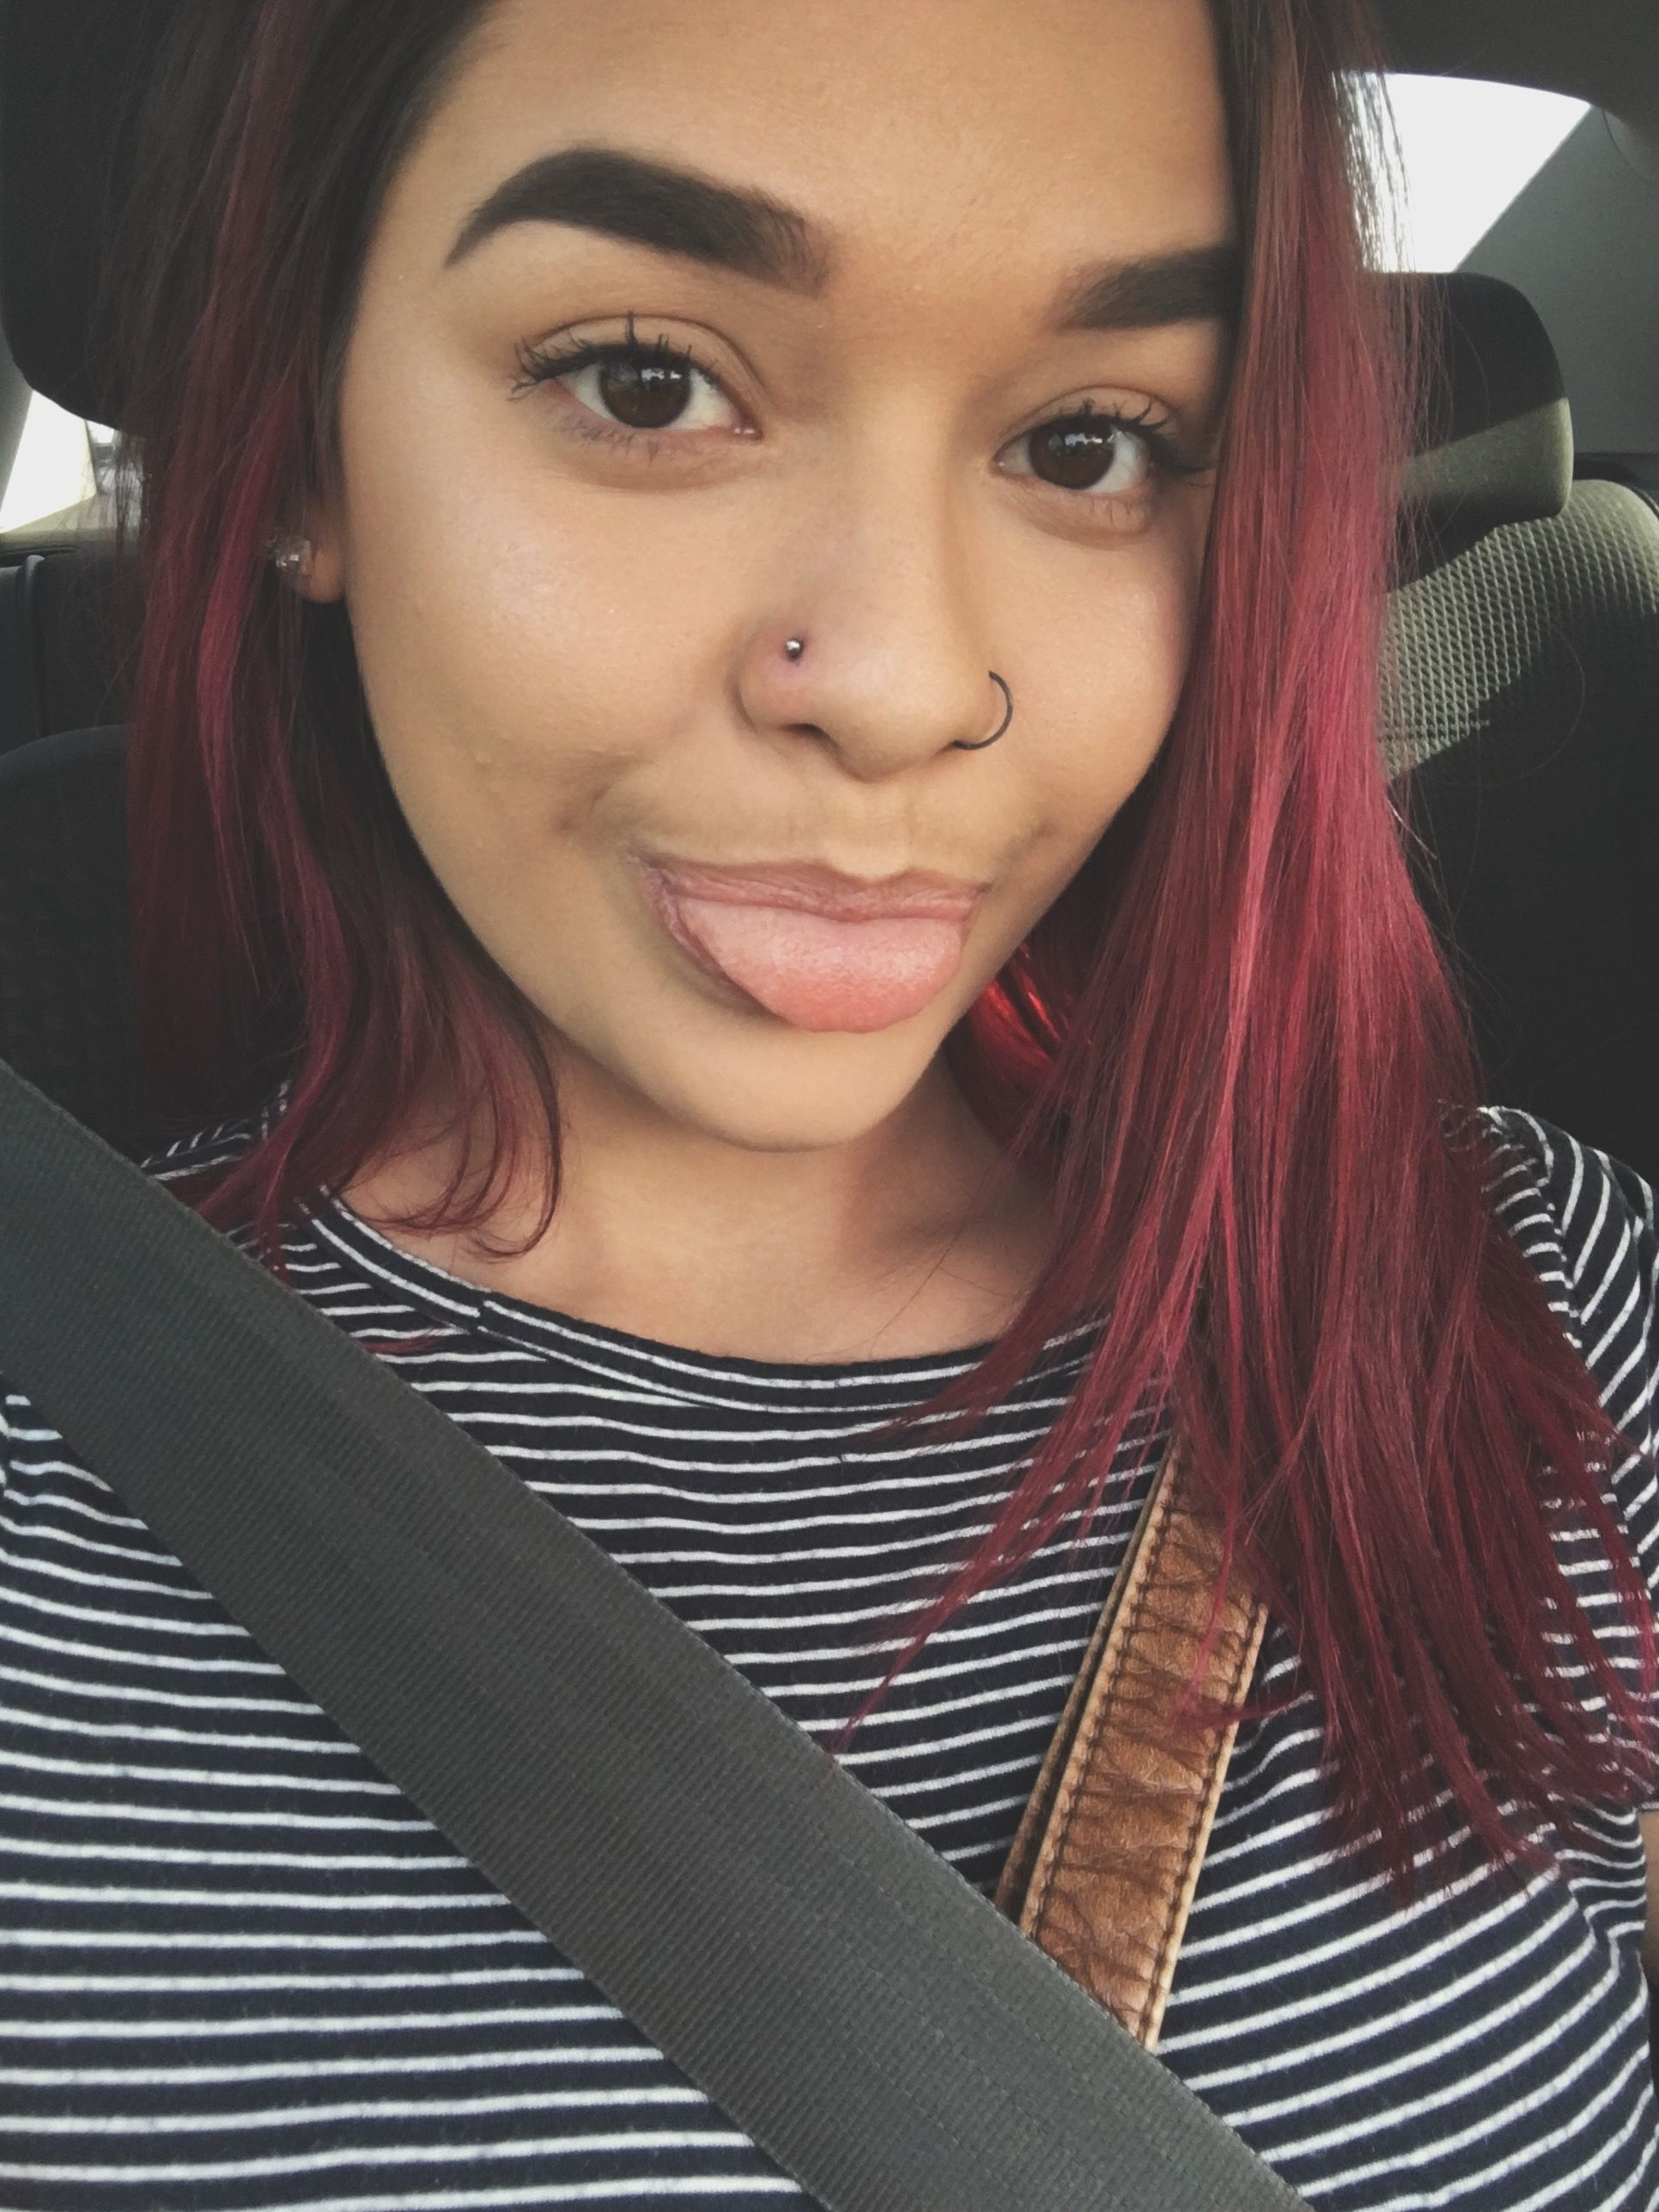 Piercing from nose to ear  Double nose piercing  piercings  Pinterest  Double nose piercing